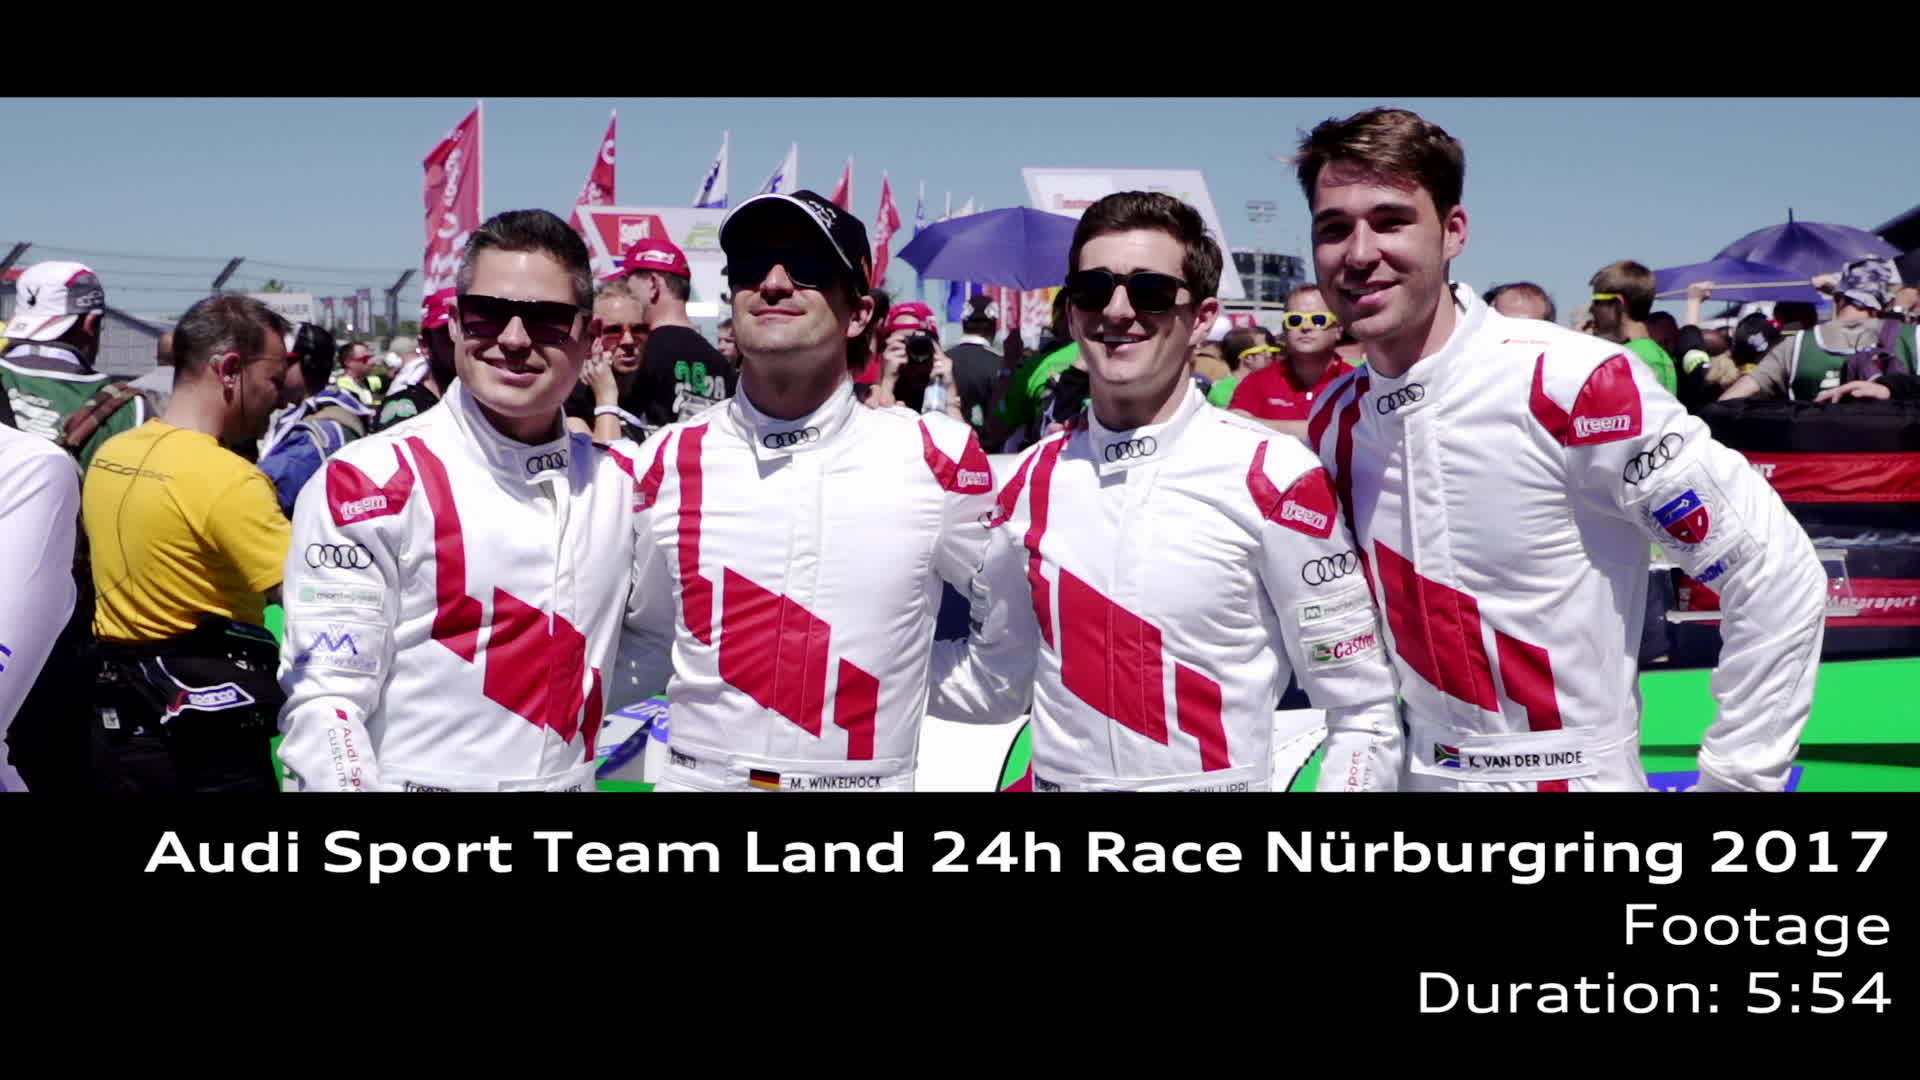 Audi Sport Team Land 2017 - Footage